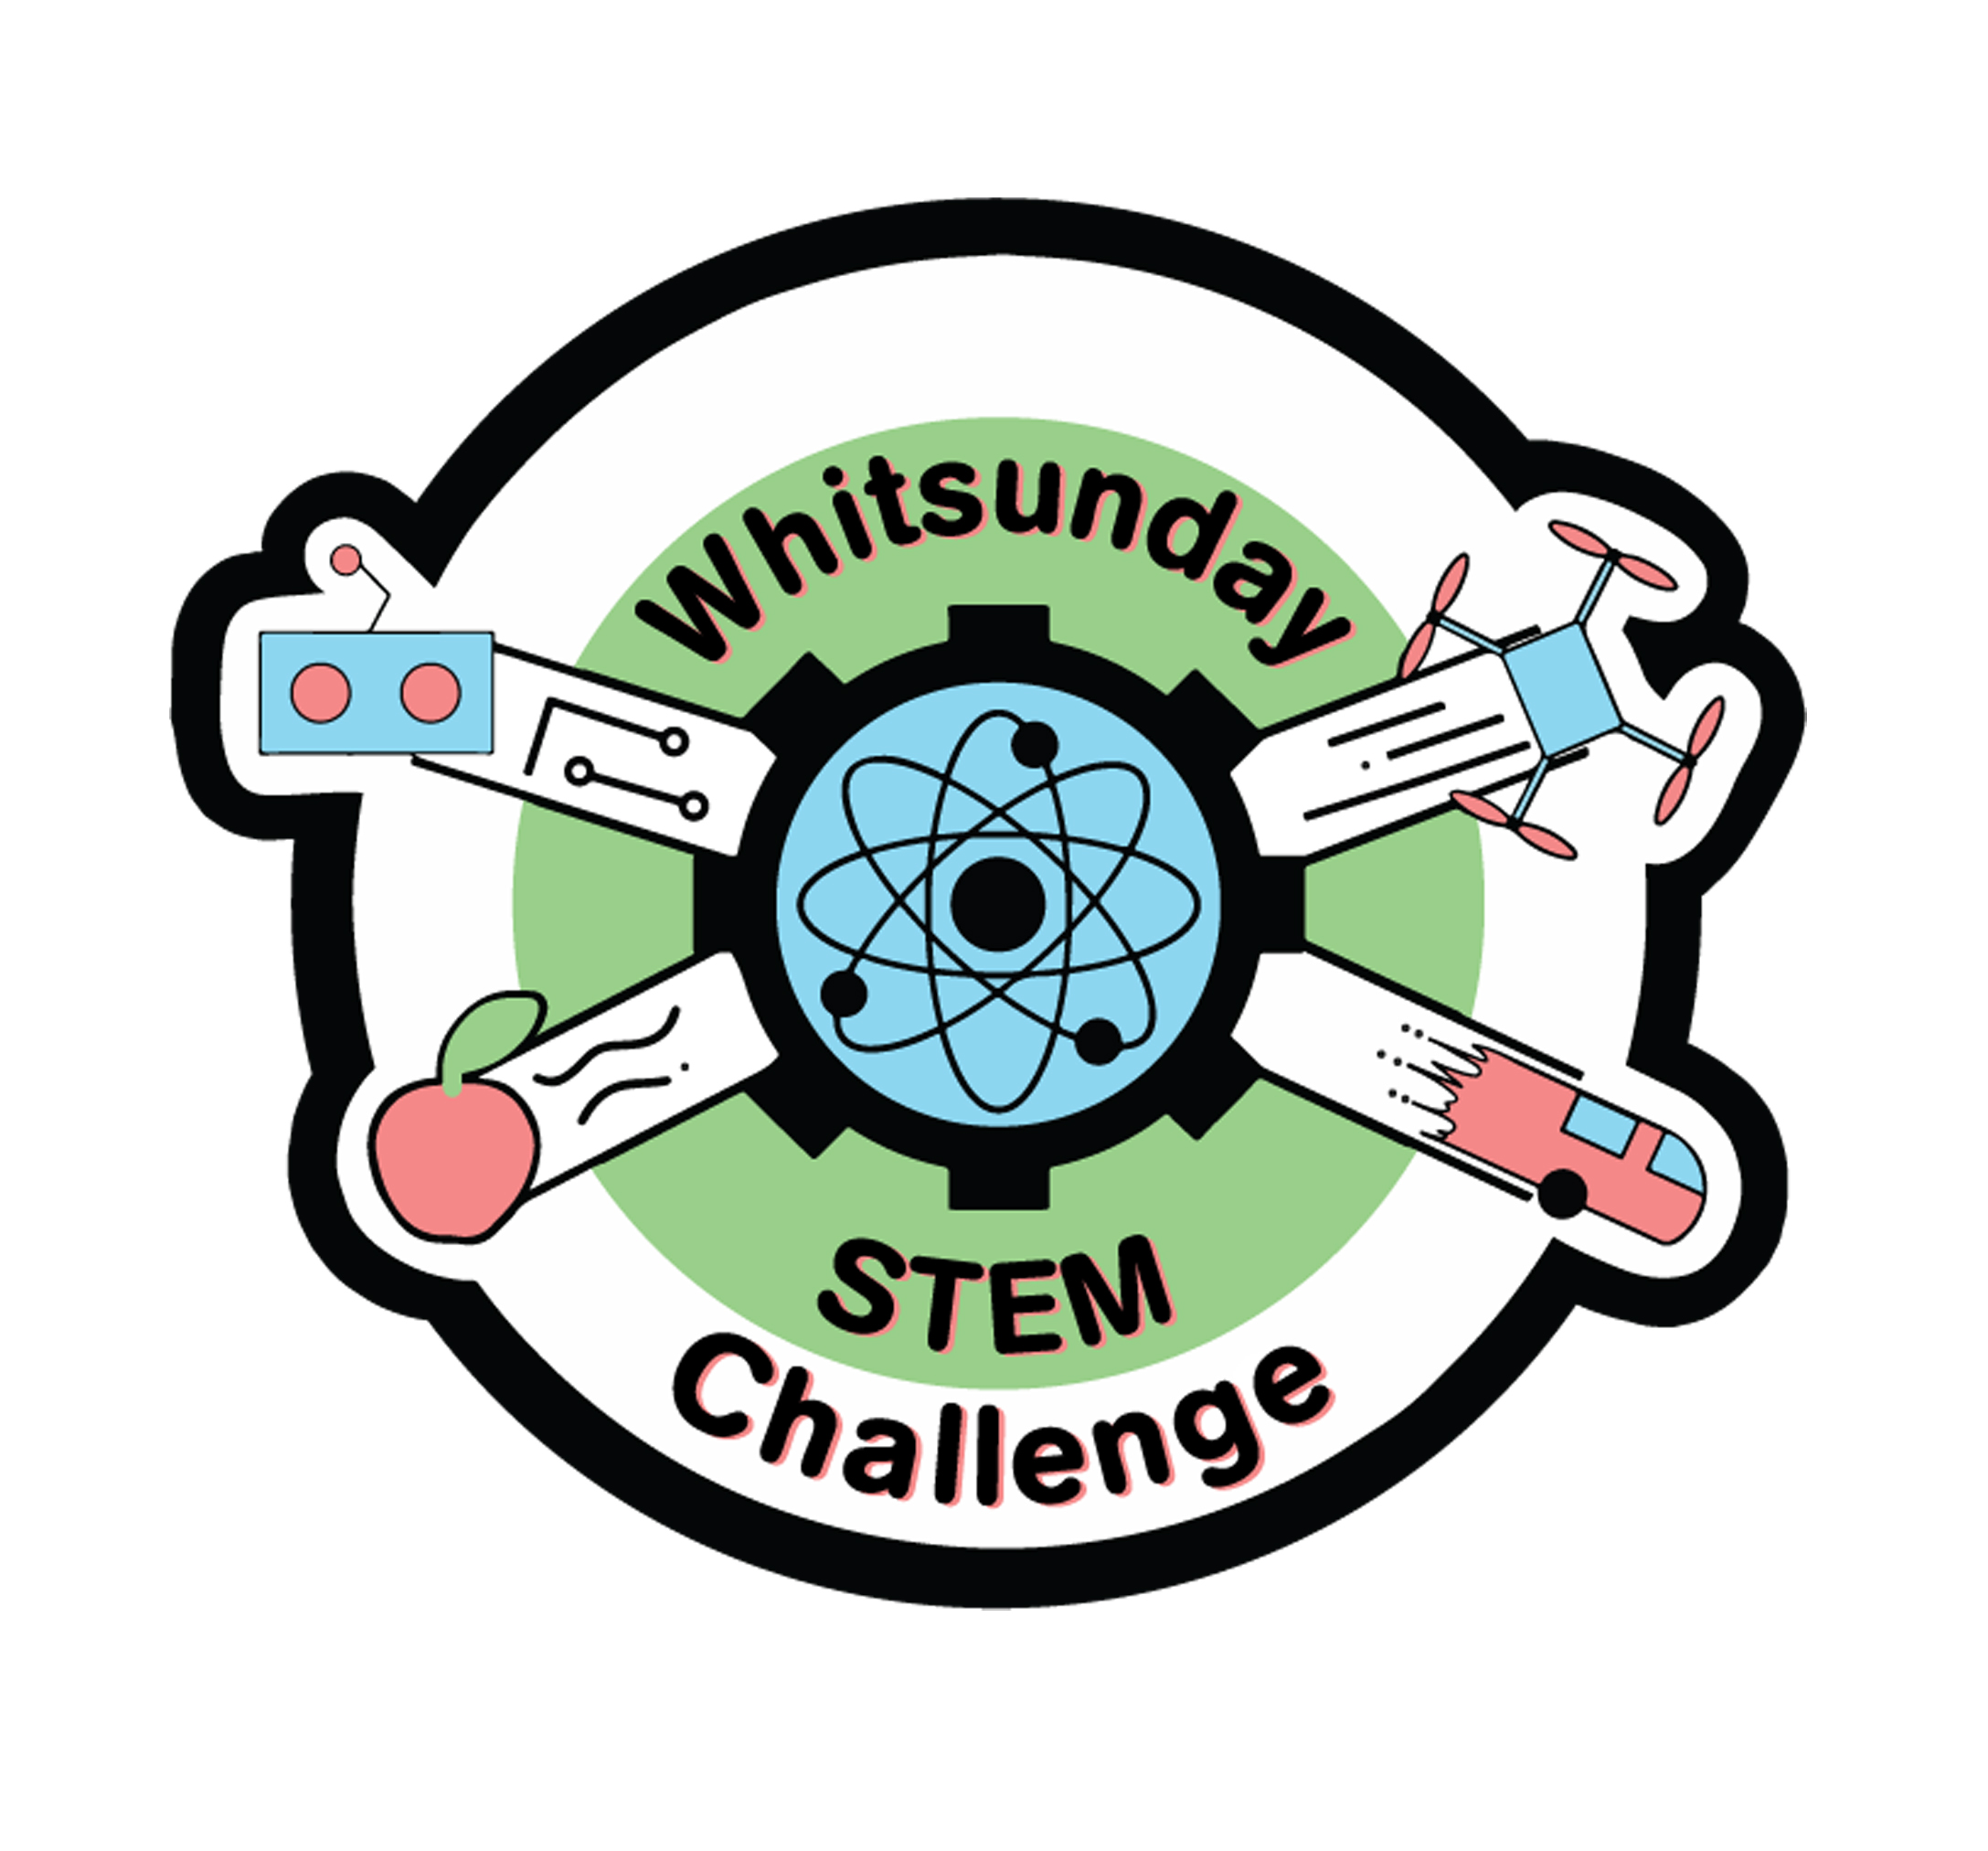 whitsunday stem challenge